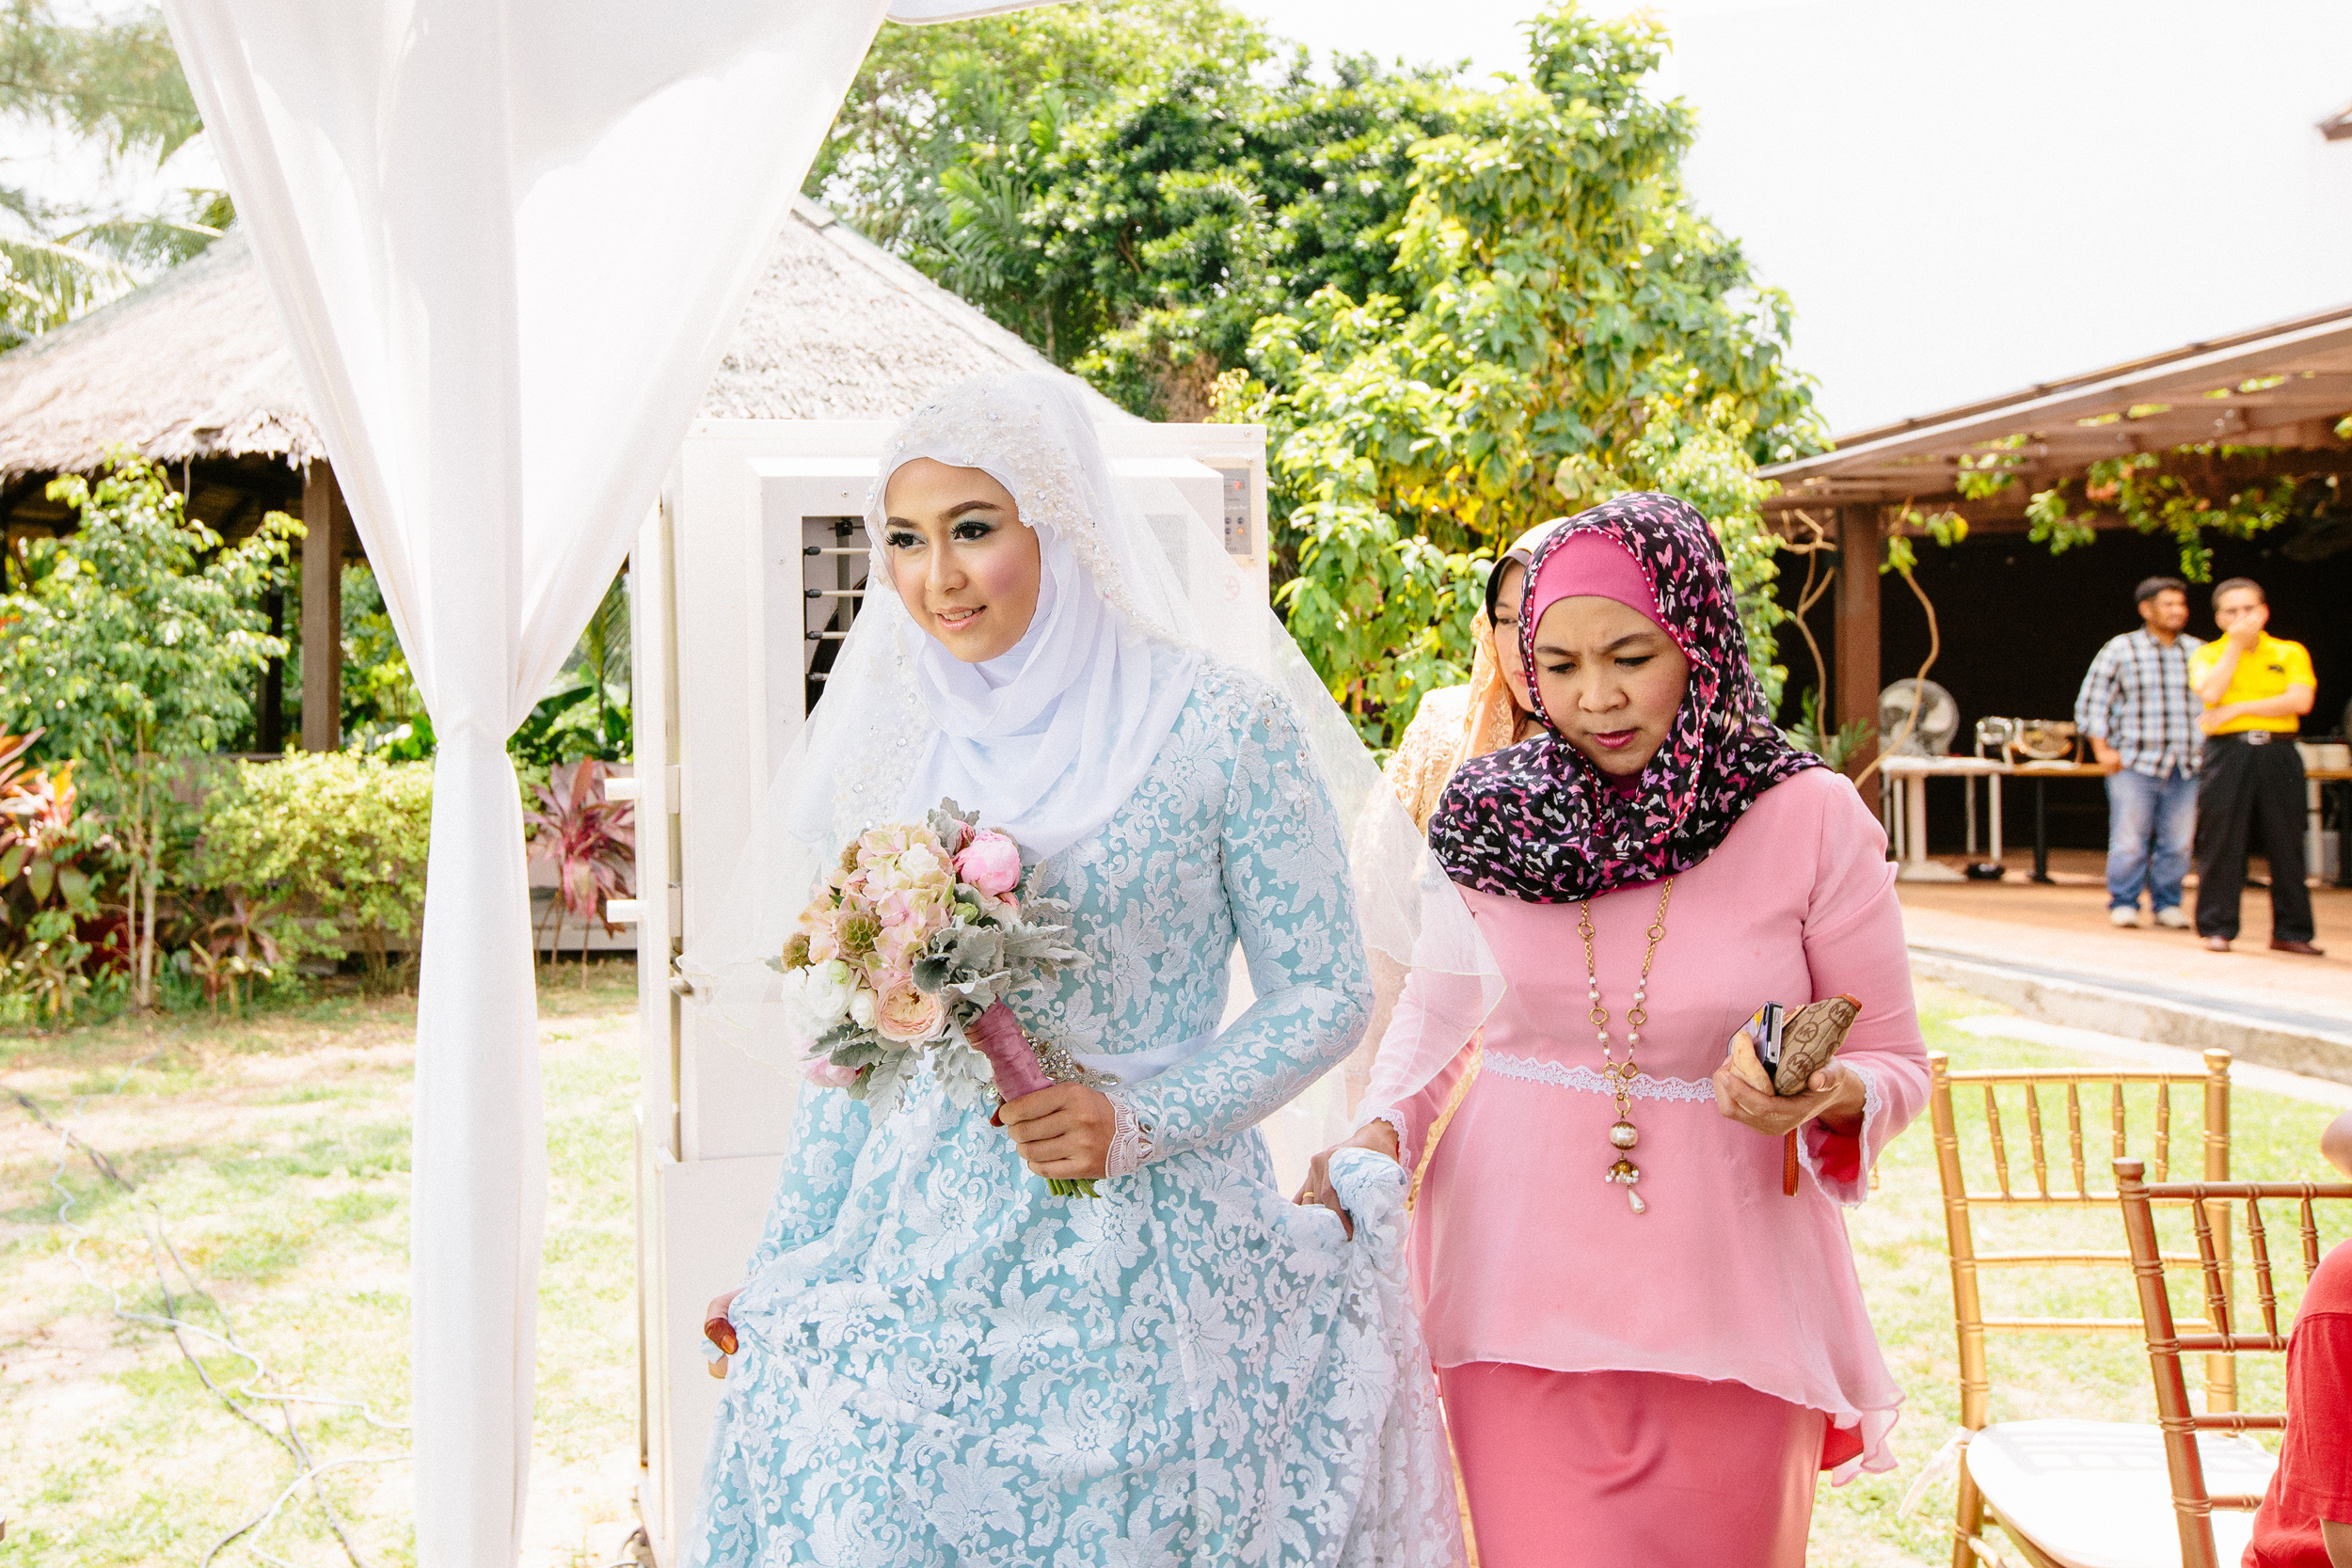 singapore-wedding-photographer-wemadethese-aisyah-helmi-13.jpg